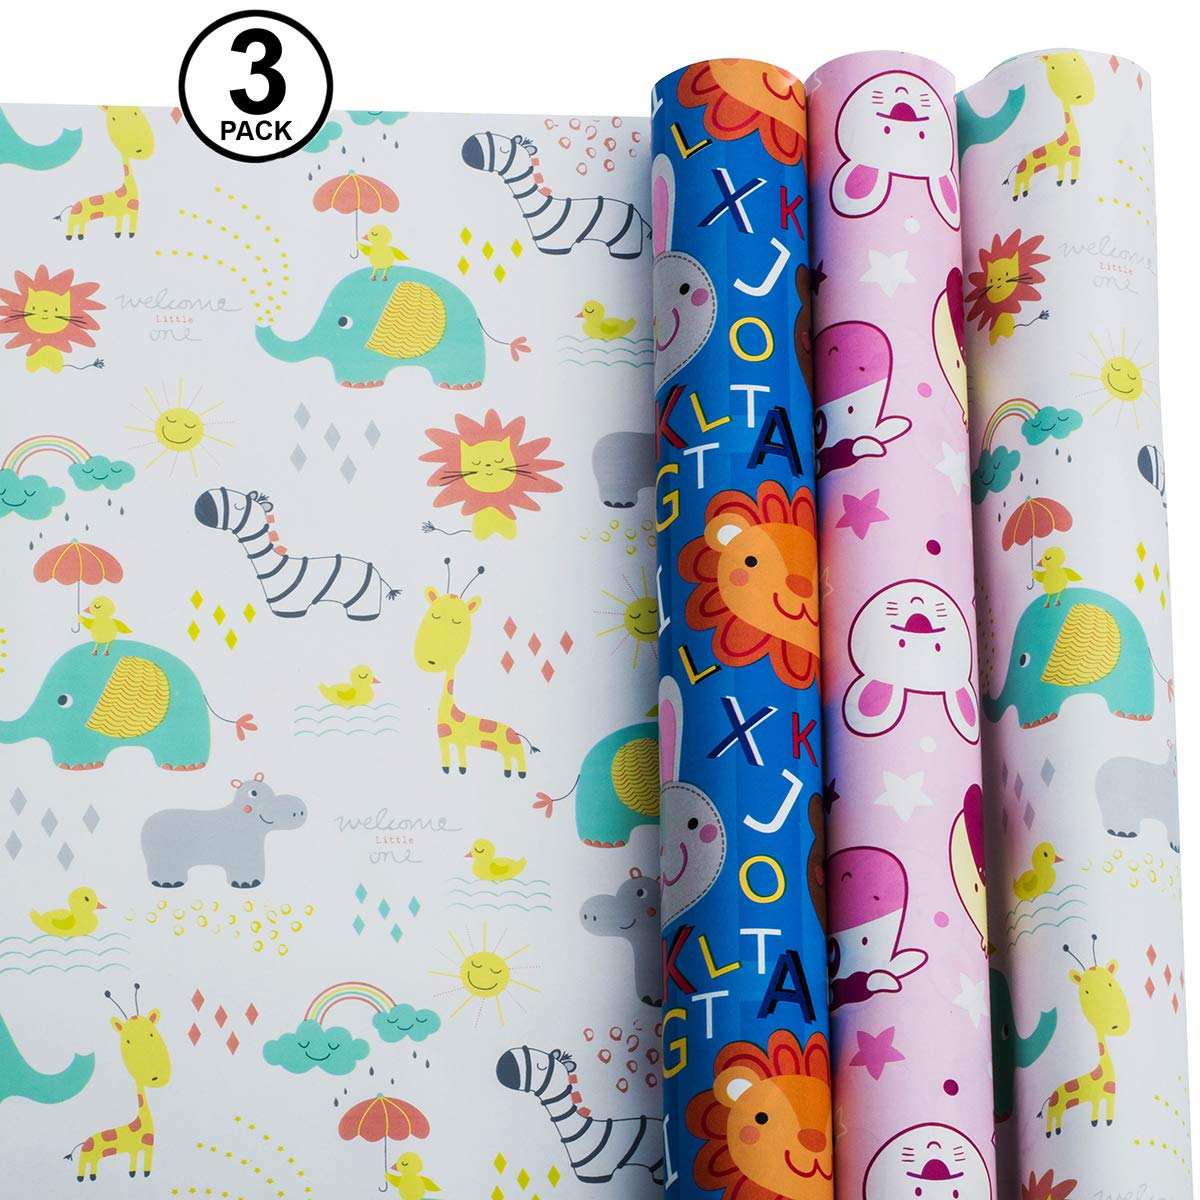 Amazon.com: Wrapping Paper – Baby Wrapping Paper Set – Animal & Zoo Gift Wrapping  Paper – Baby Shower Wrapping Paper Roll – (Pack of 3, 30in x 120in per ...